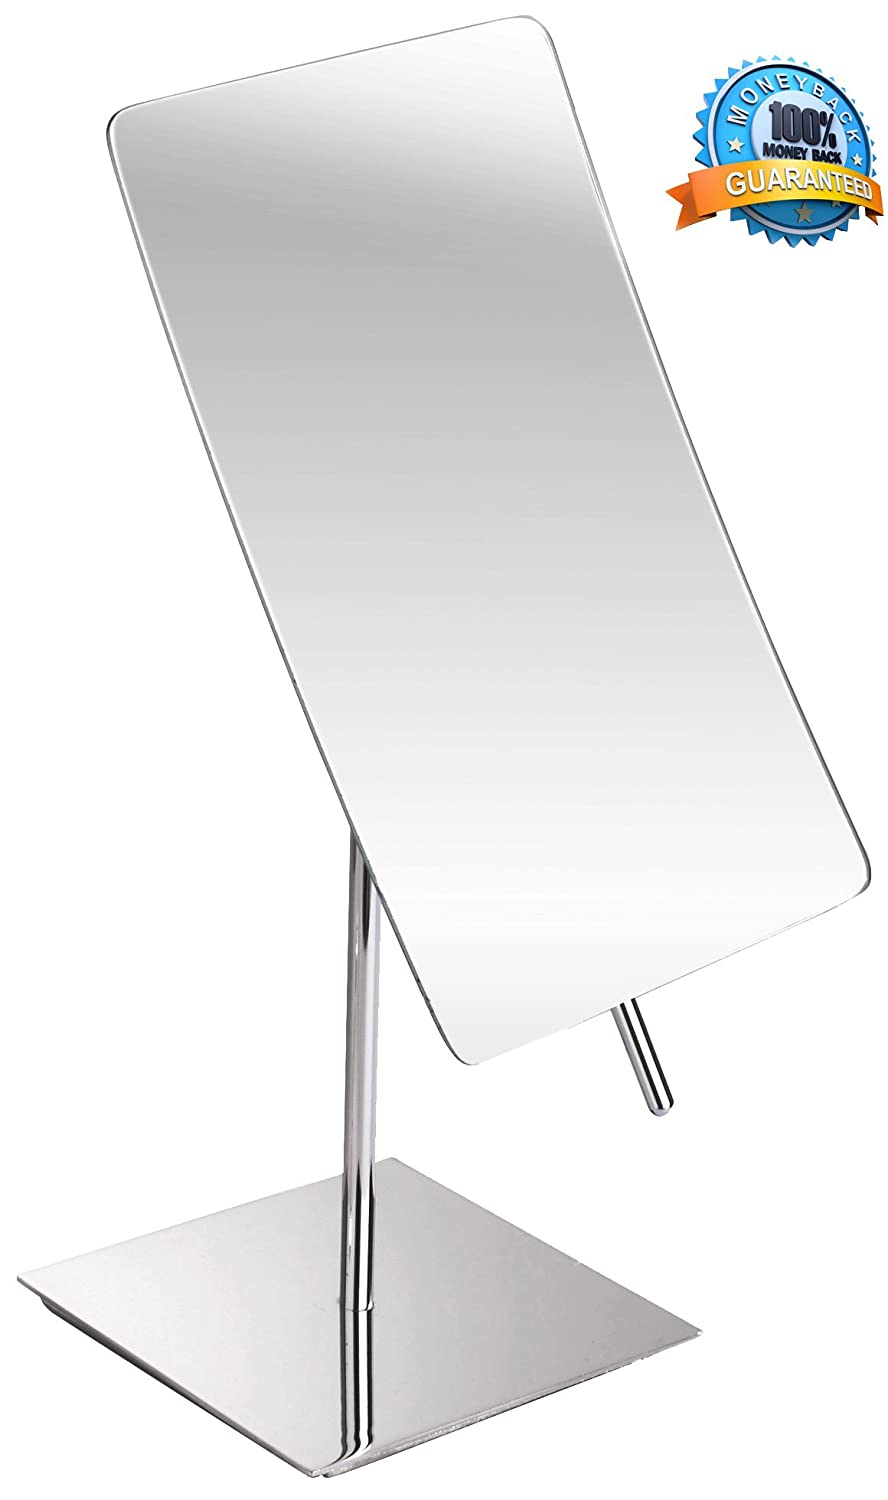 3X Magnified Premium Modern Rectangle Vanity Makeup Mirror